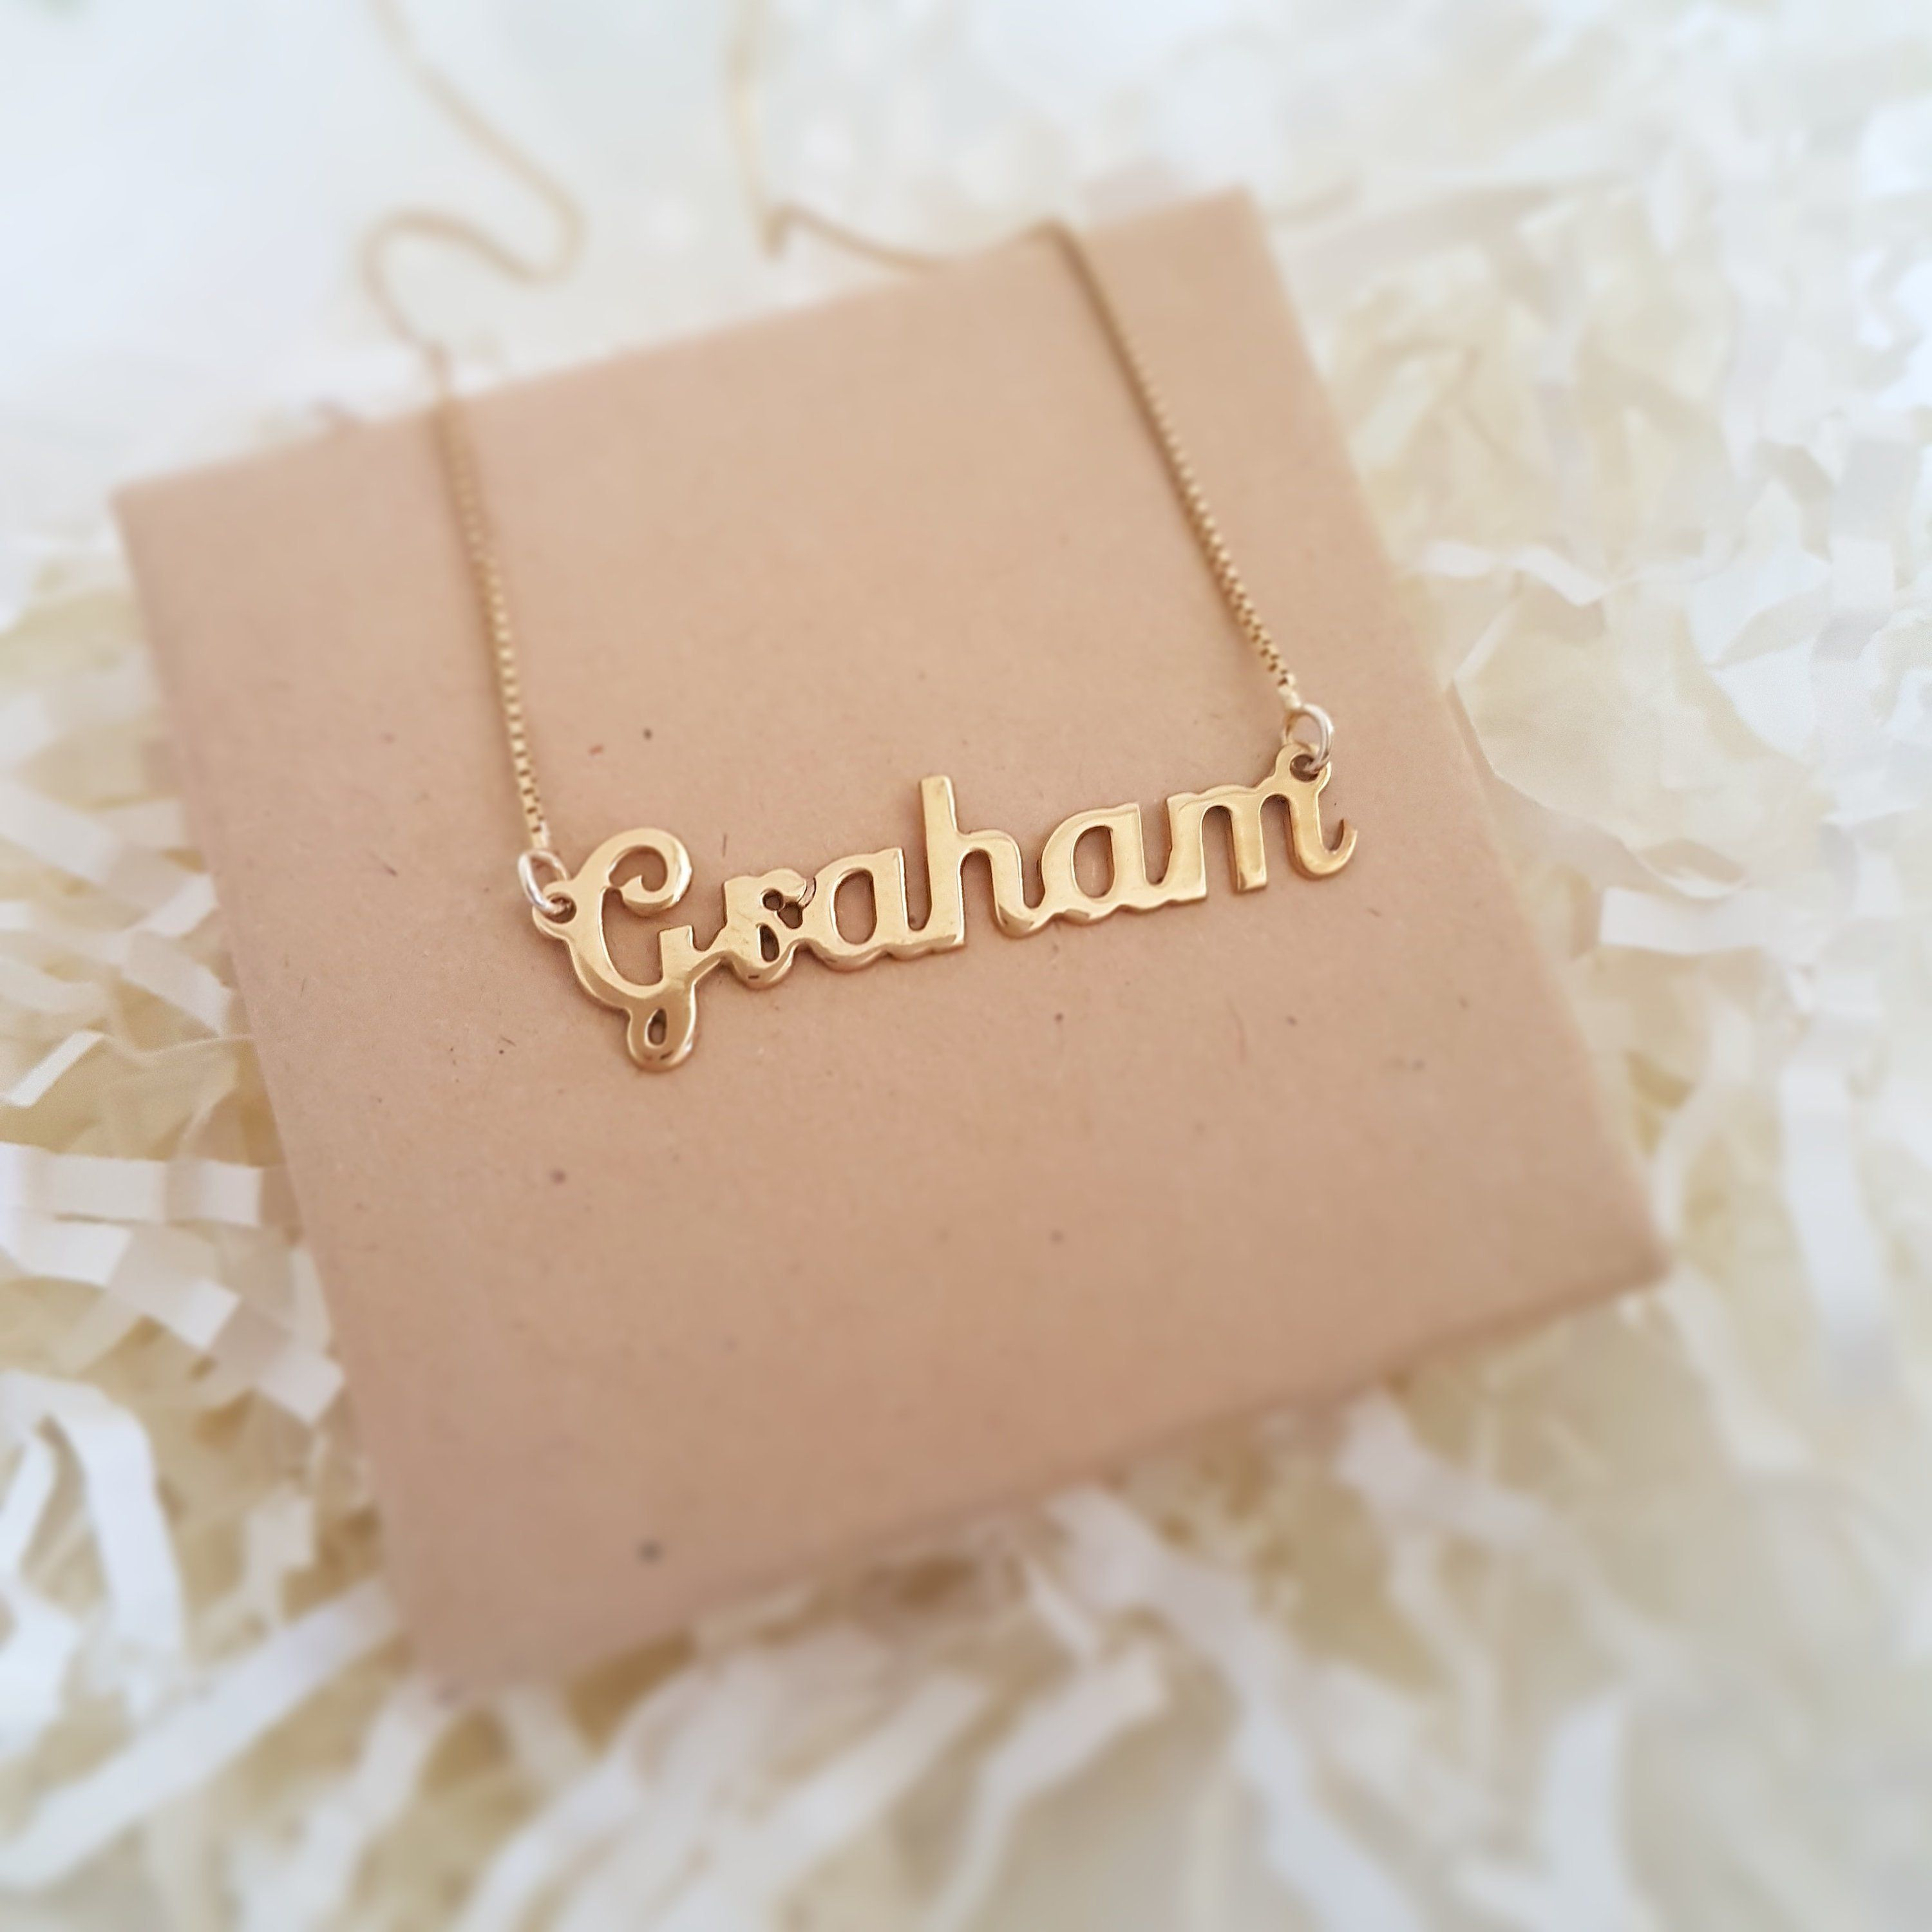 Customized name necklace name pendant name chain name plate jewelry